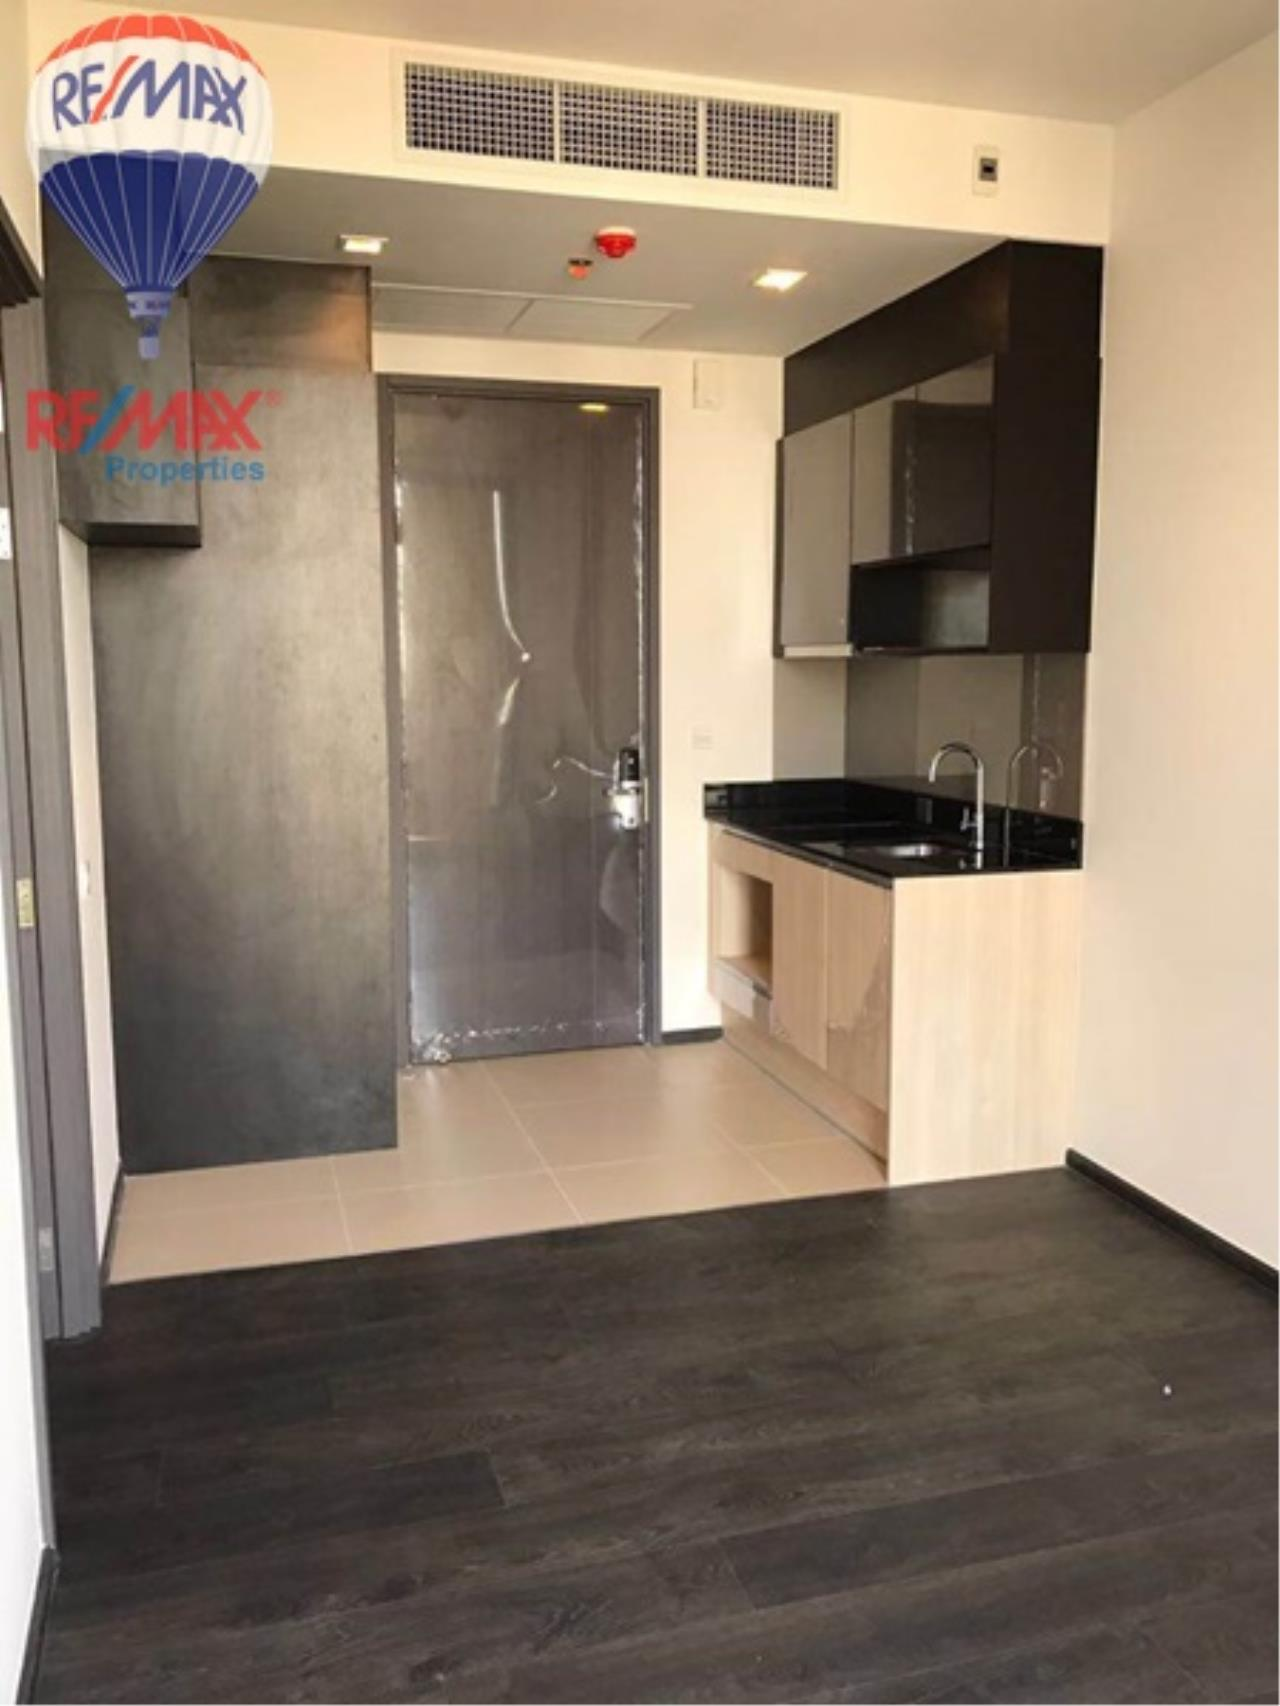 RE/MAX Properties Agency's The Edge Sukhumvit 23,1 Bedroom for sale 8